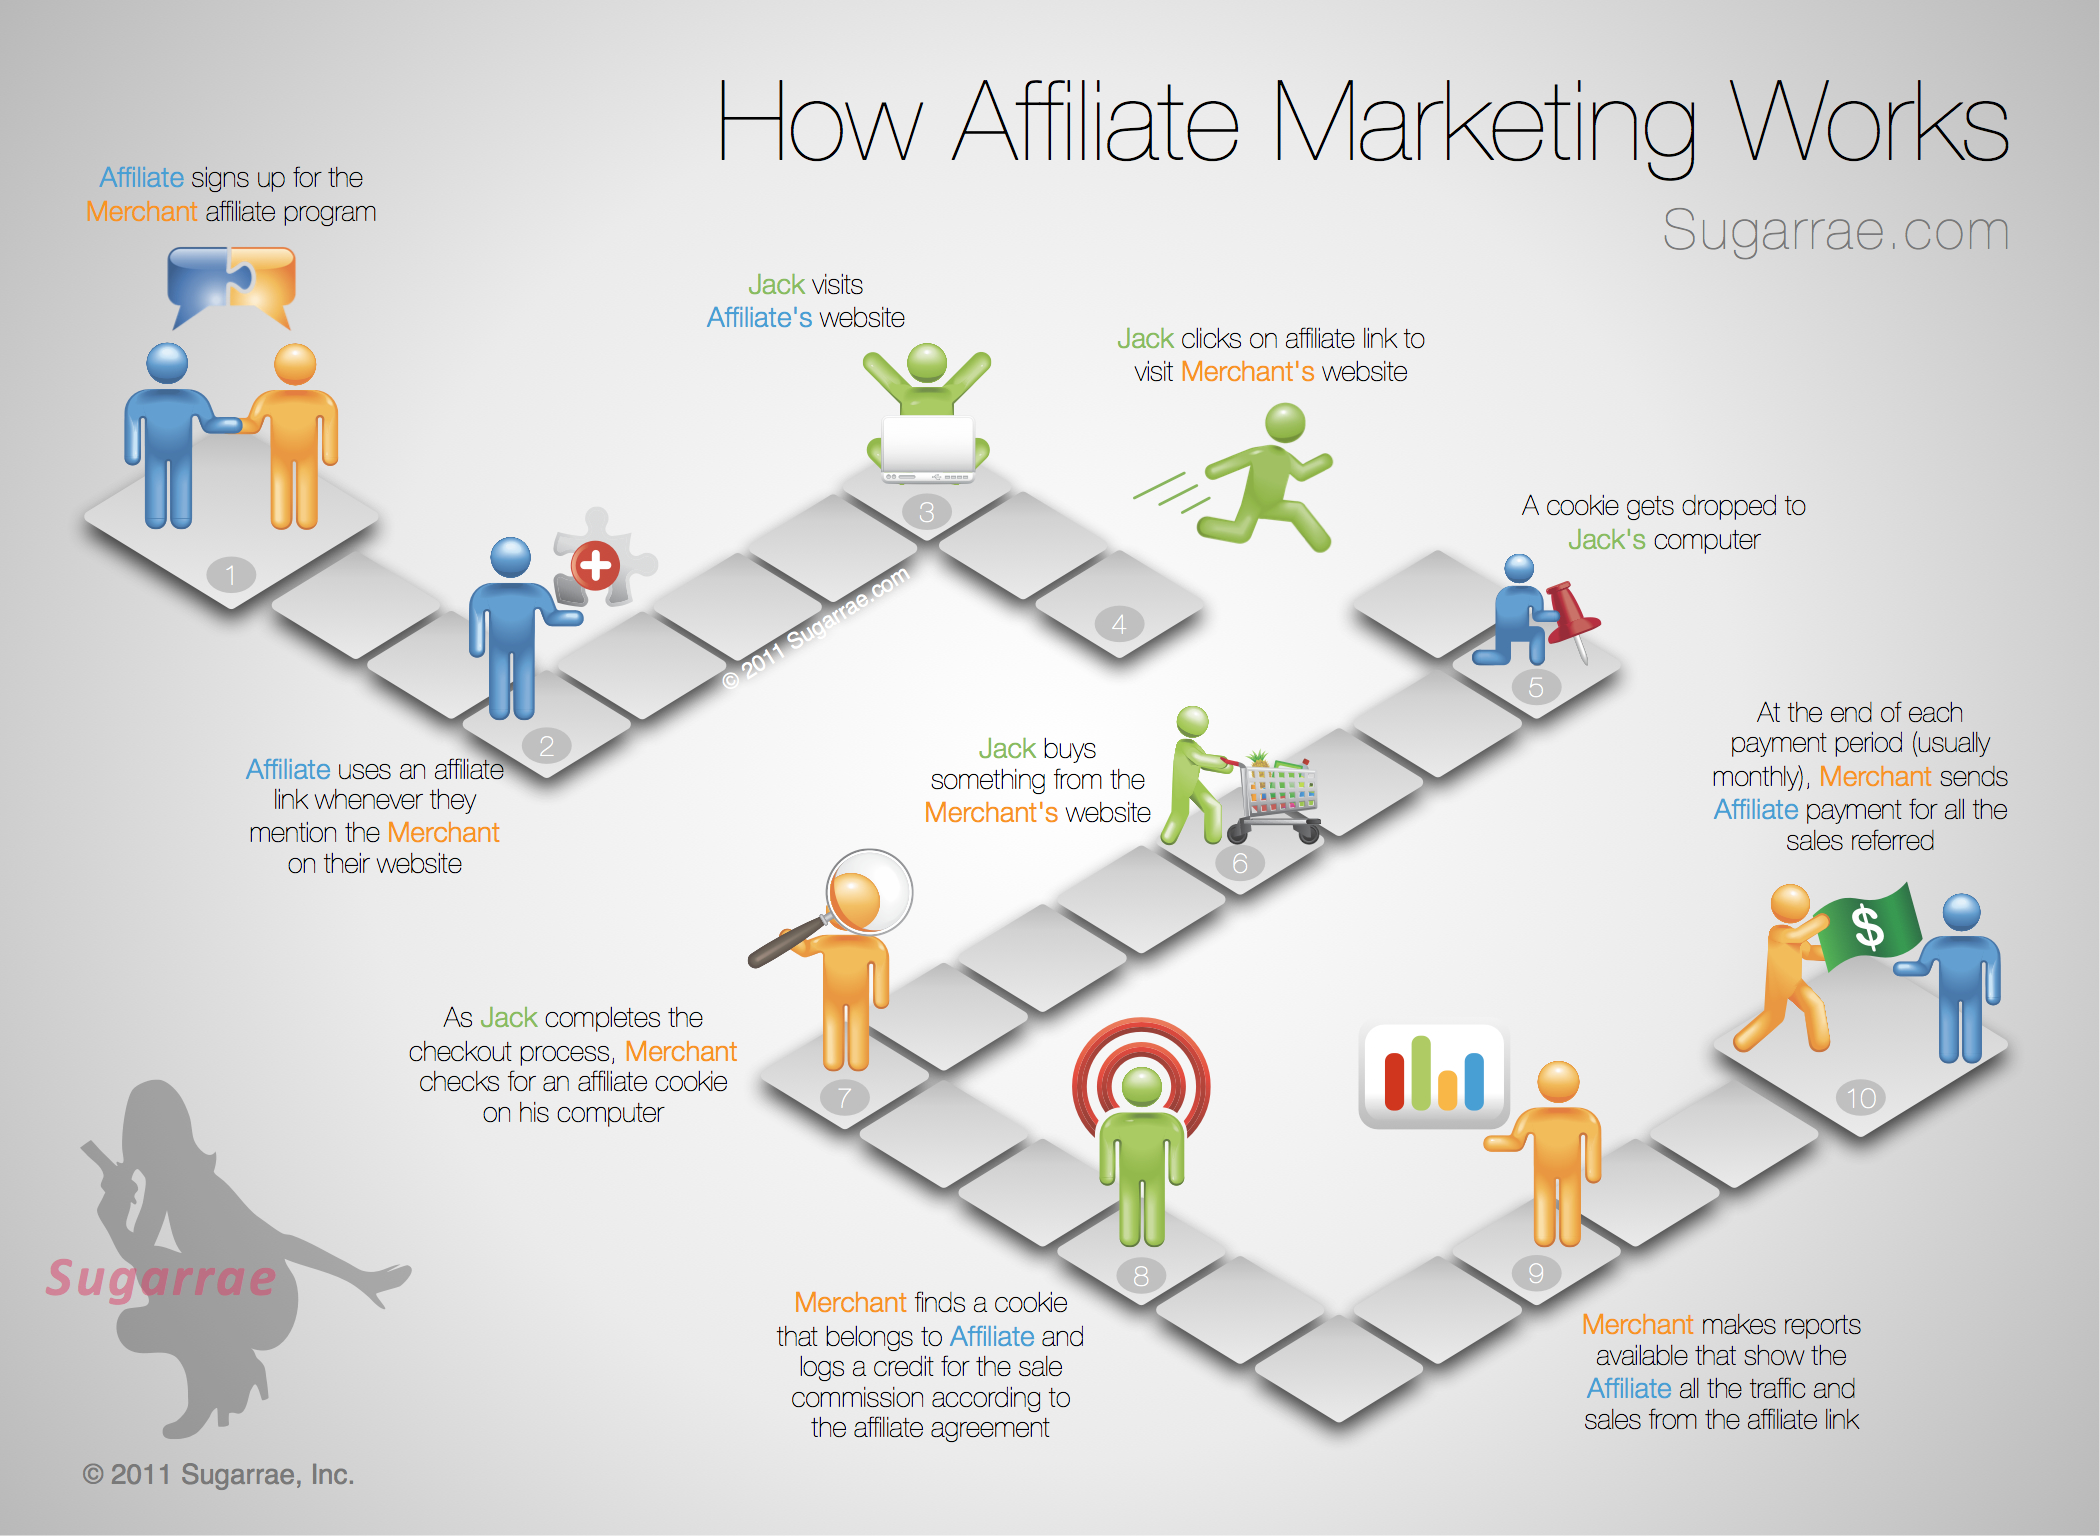 How Affiliate Marketing works infographic? Source:  Sugarrae